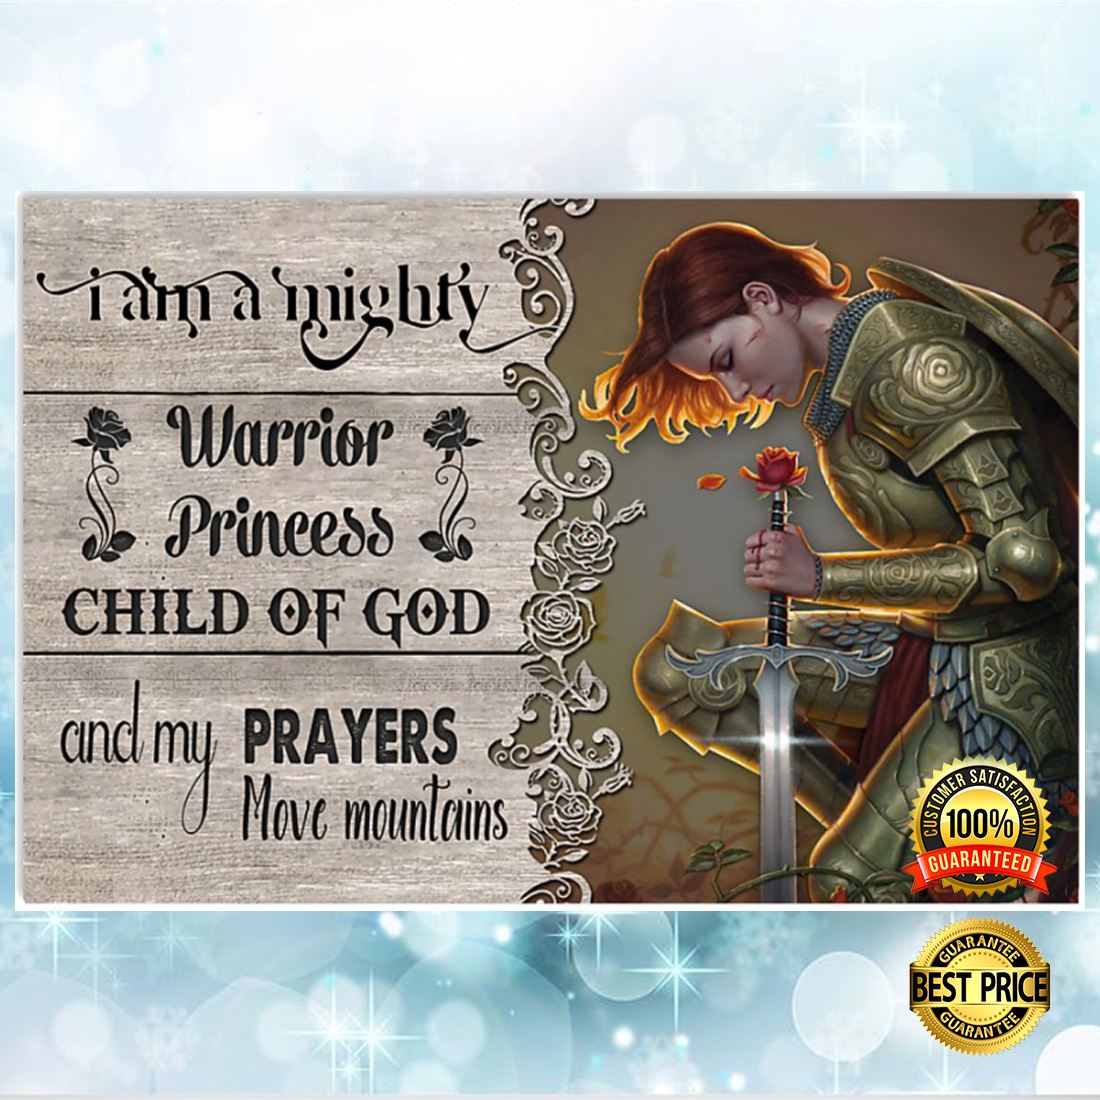 I am a mighty warrior princess child of god poster 5